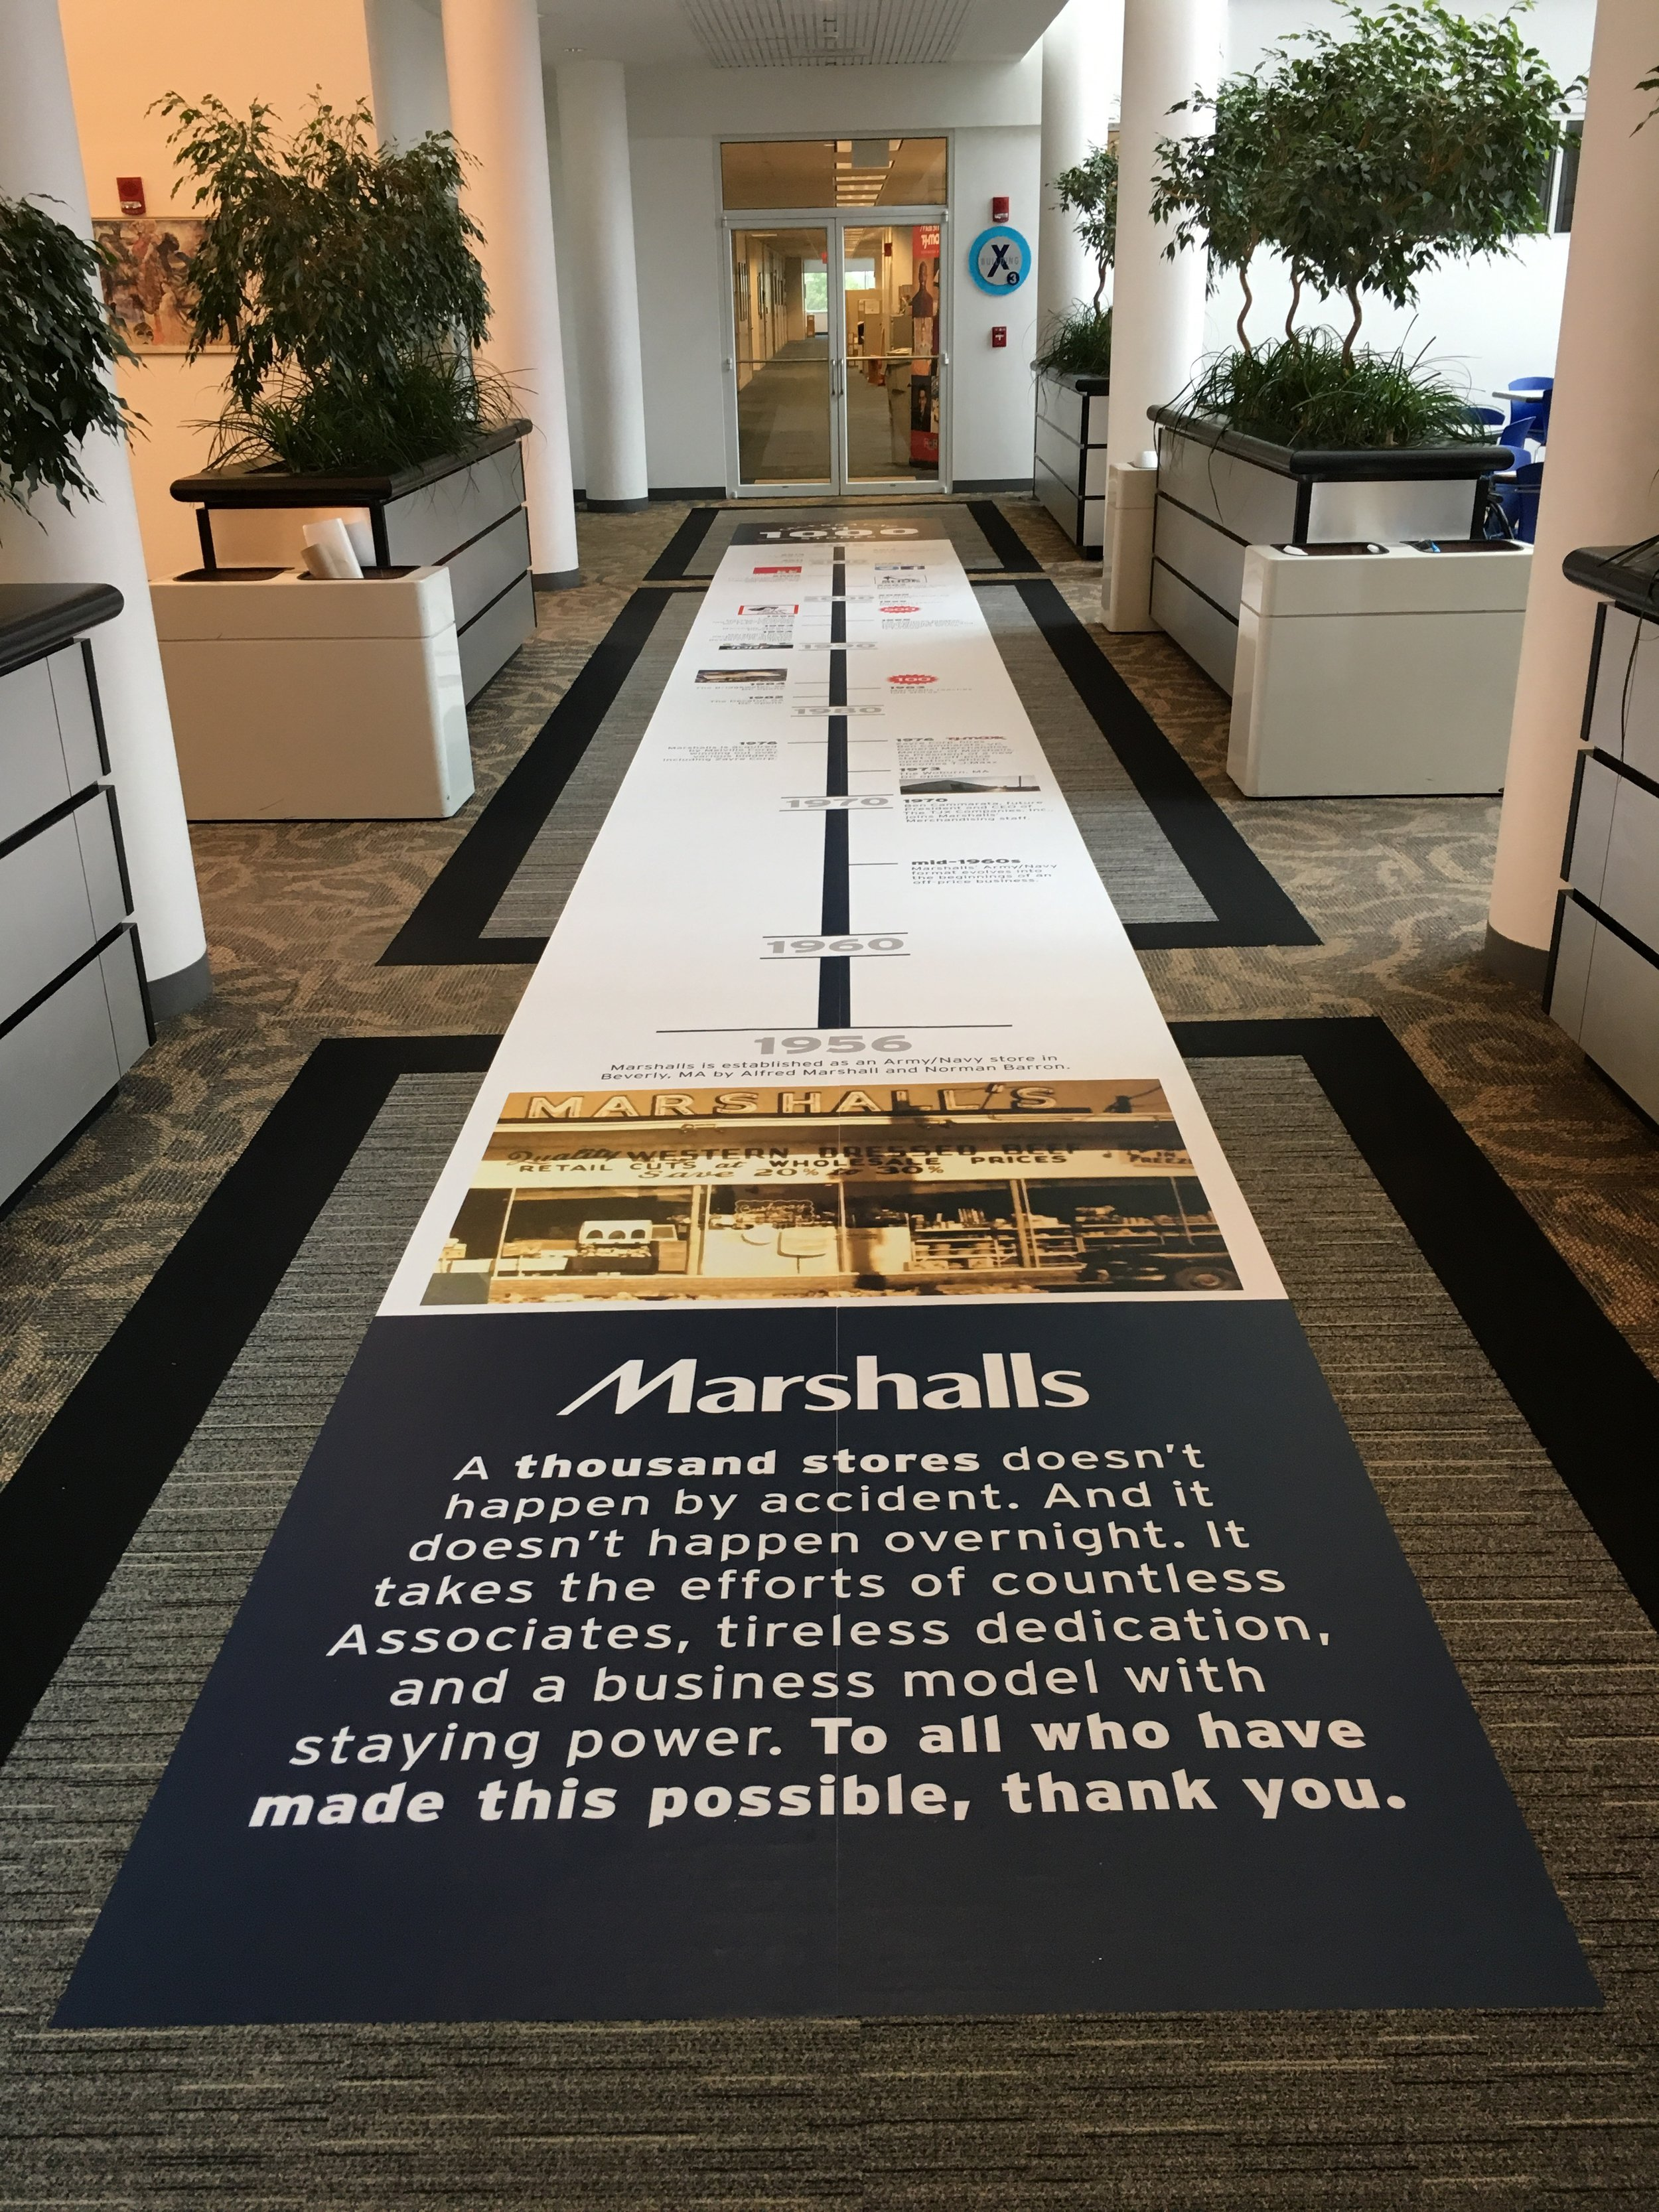 A timeline of the history of Marshalls on the floor of the main cafeteria